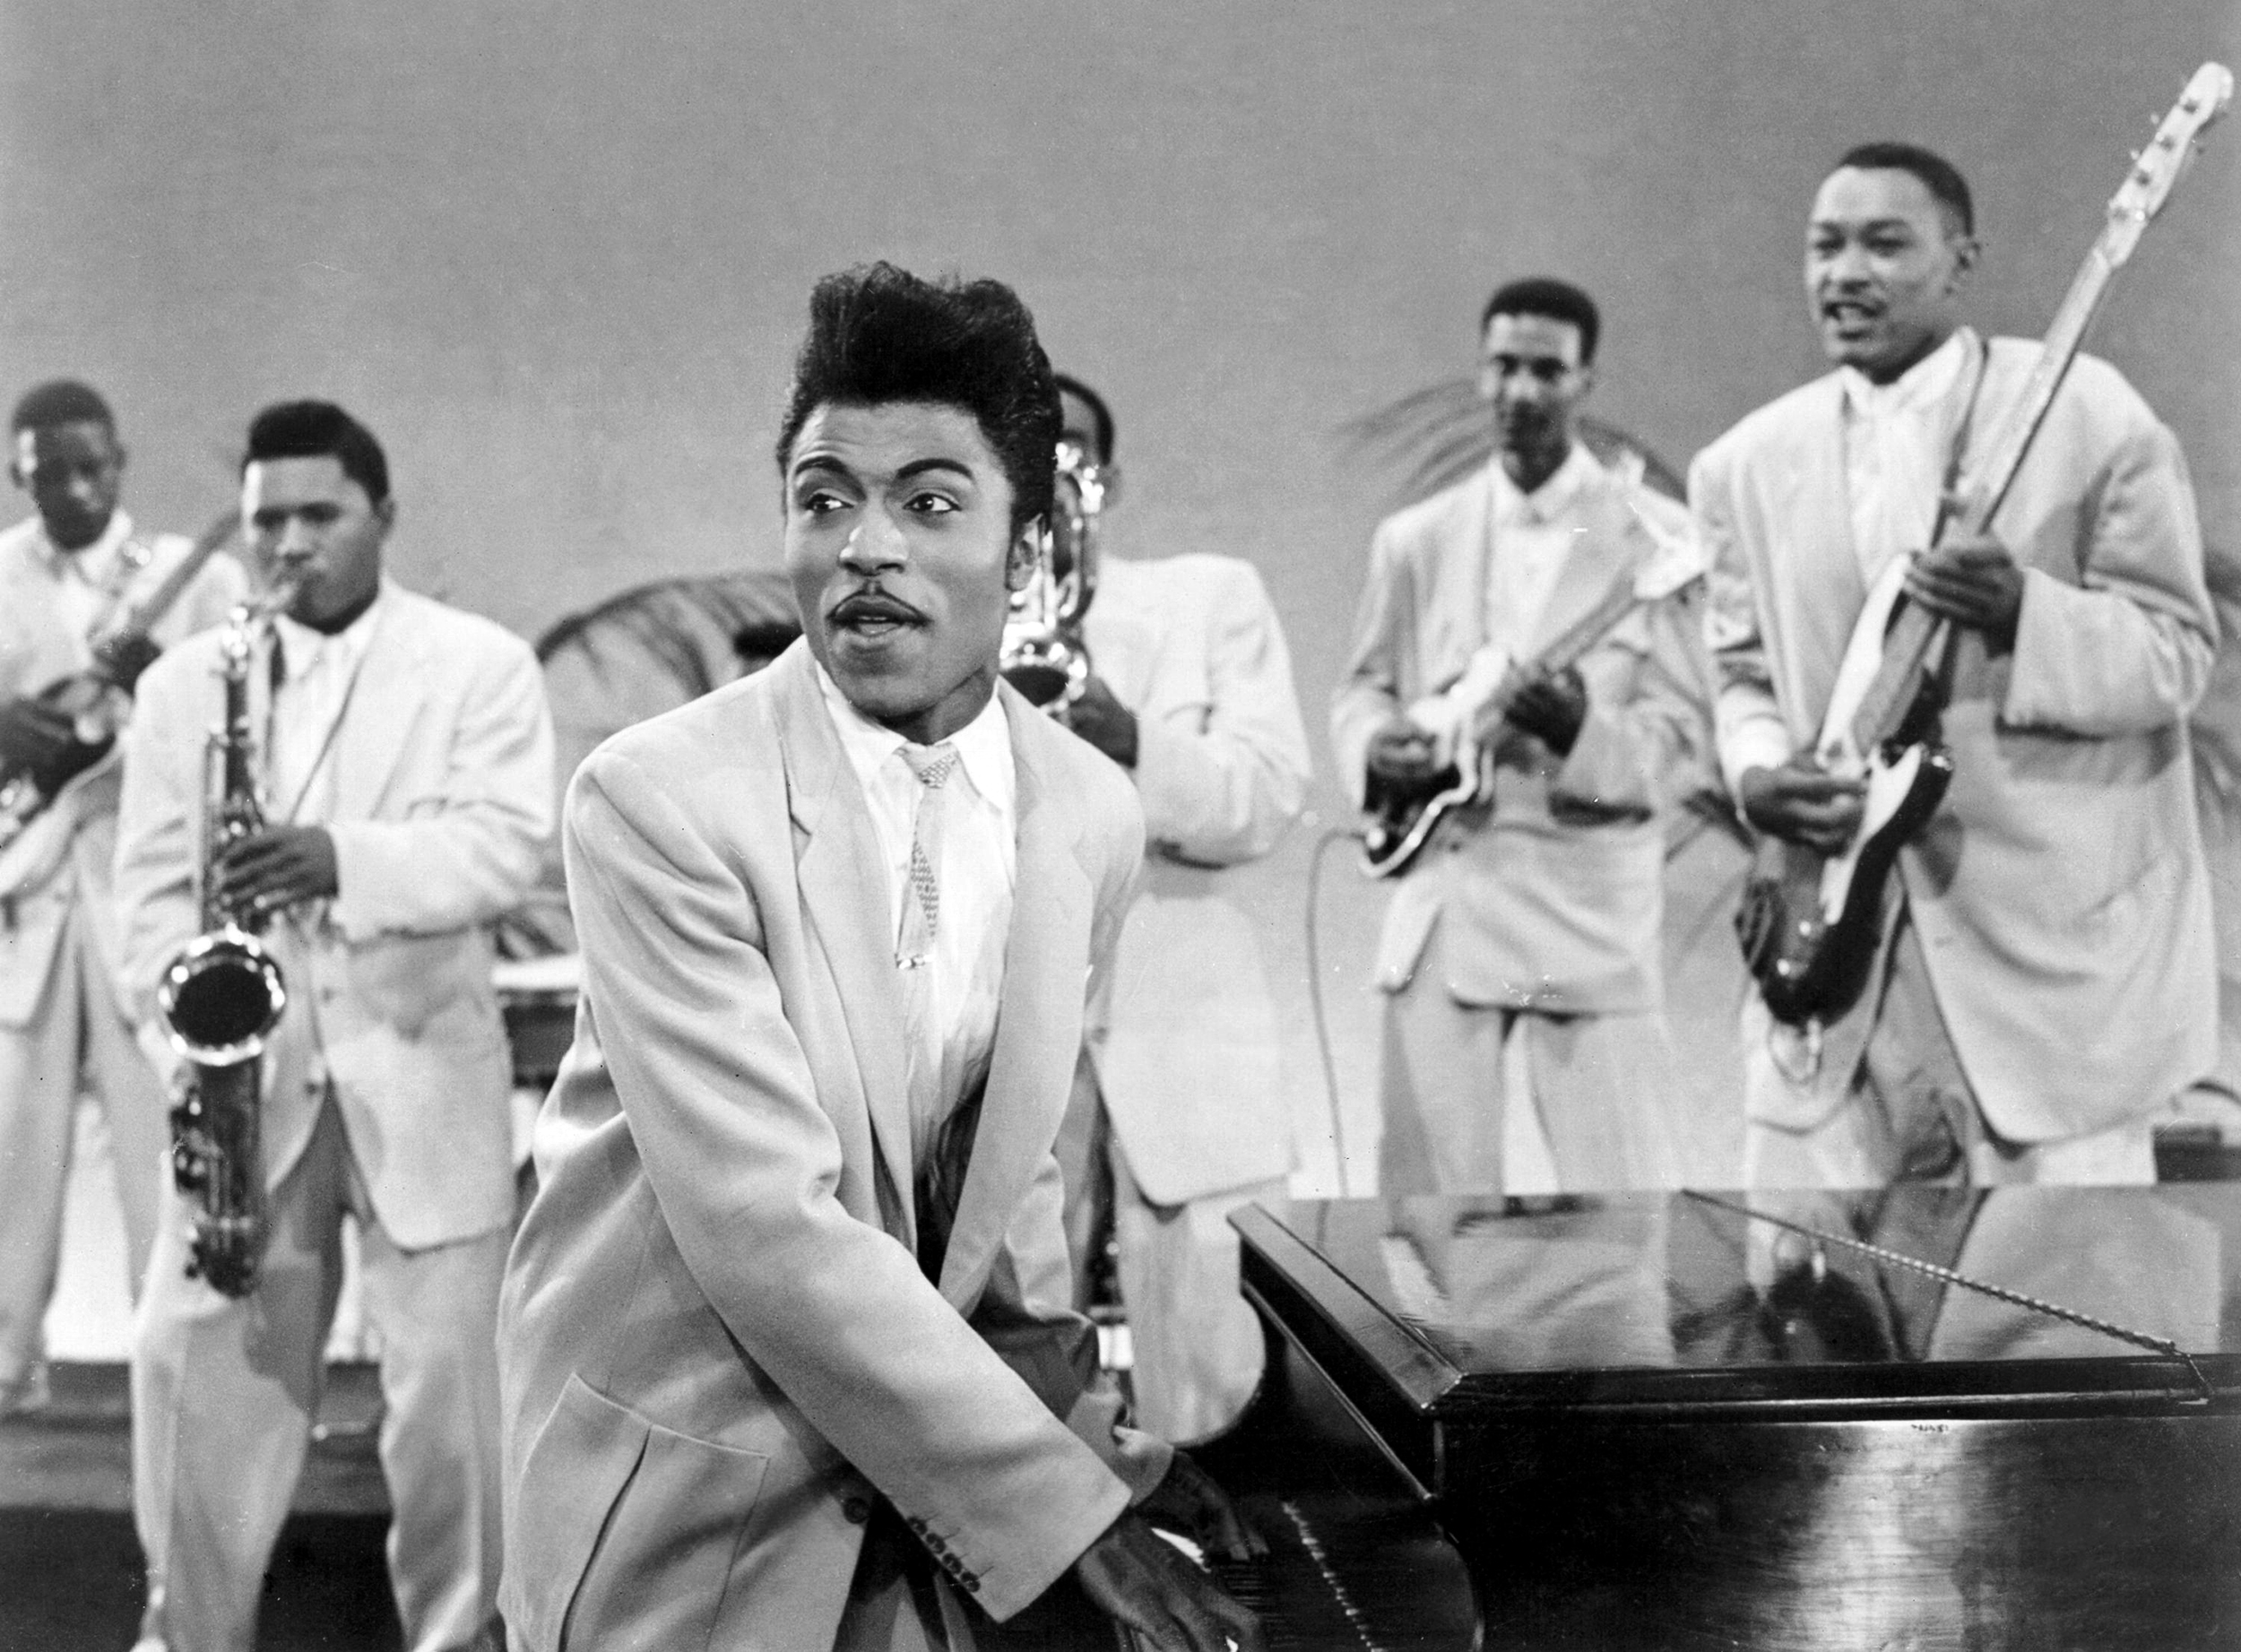 Little Richard dead at 87: The rock and roll king who scared — and changed  — America